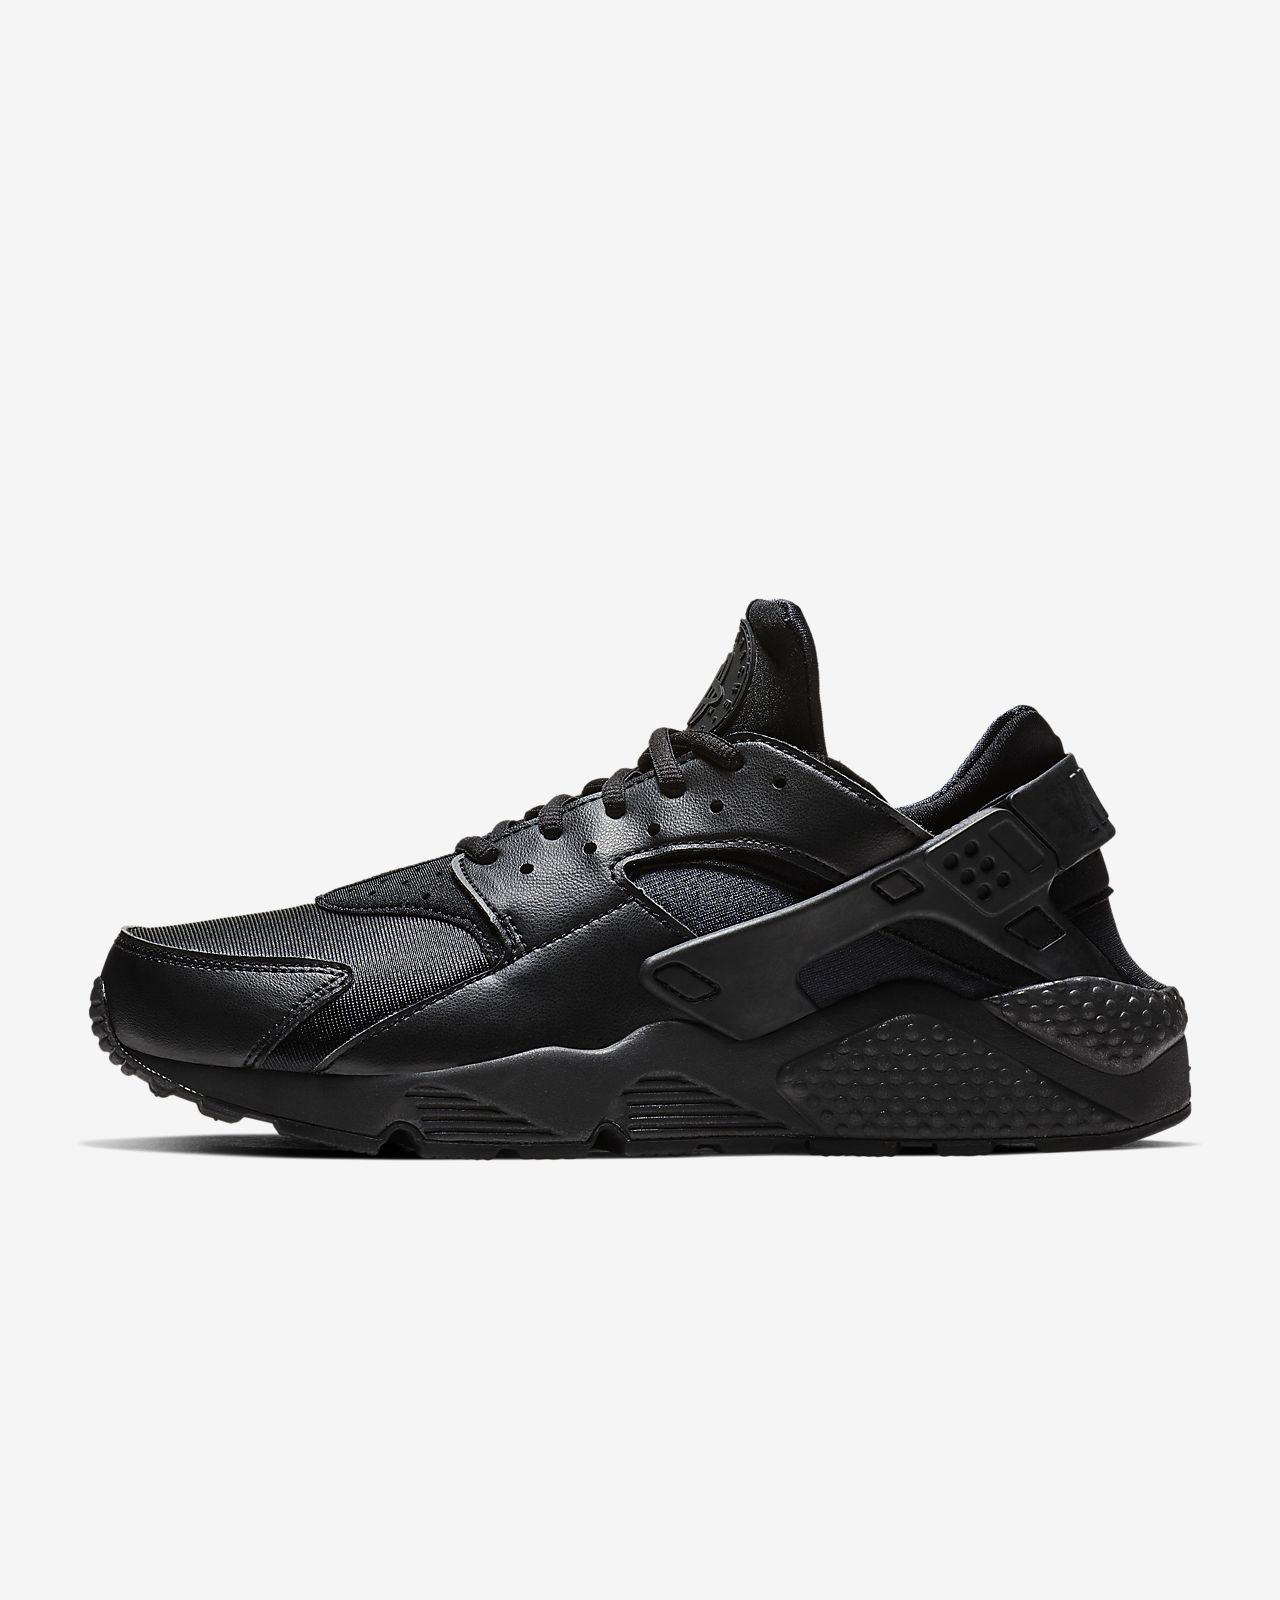 6a8555df67e Nike Air Huarache Women s Shoe. Nike.com